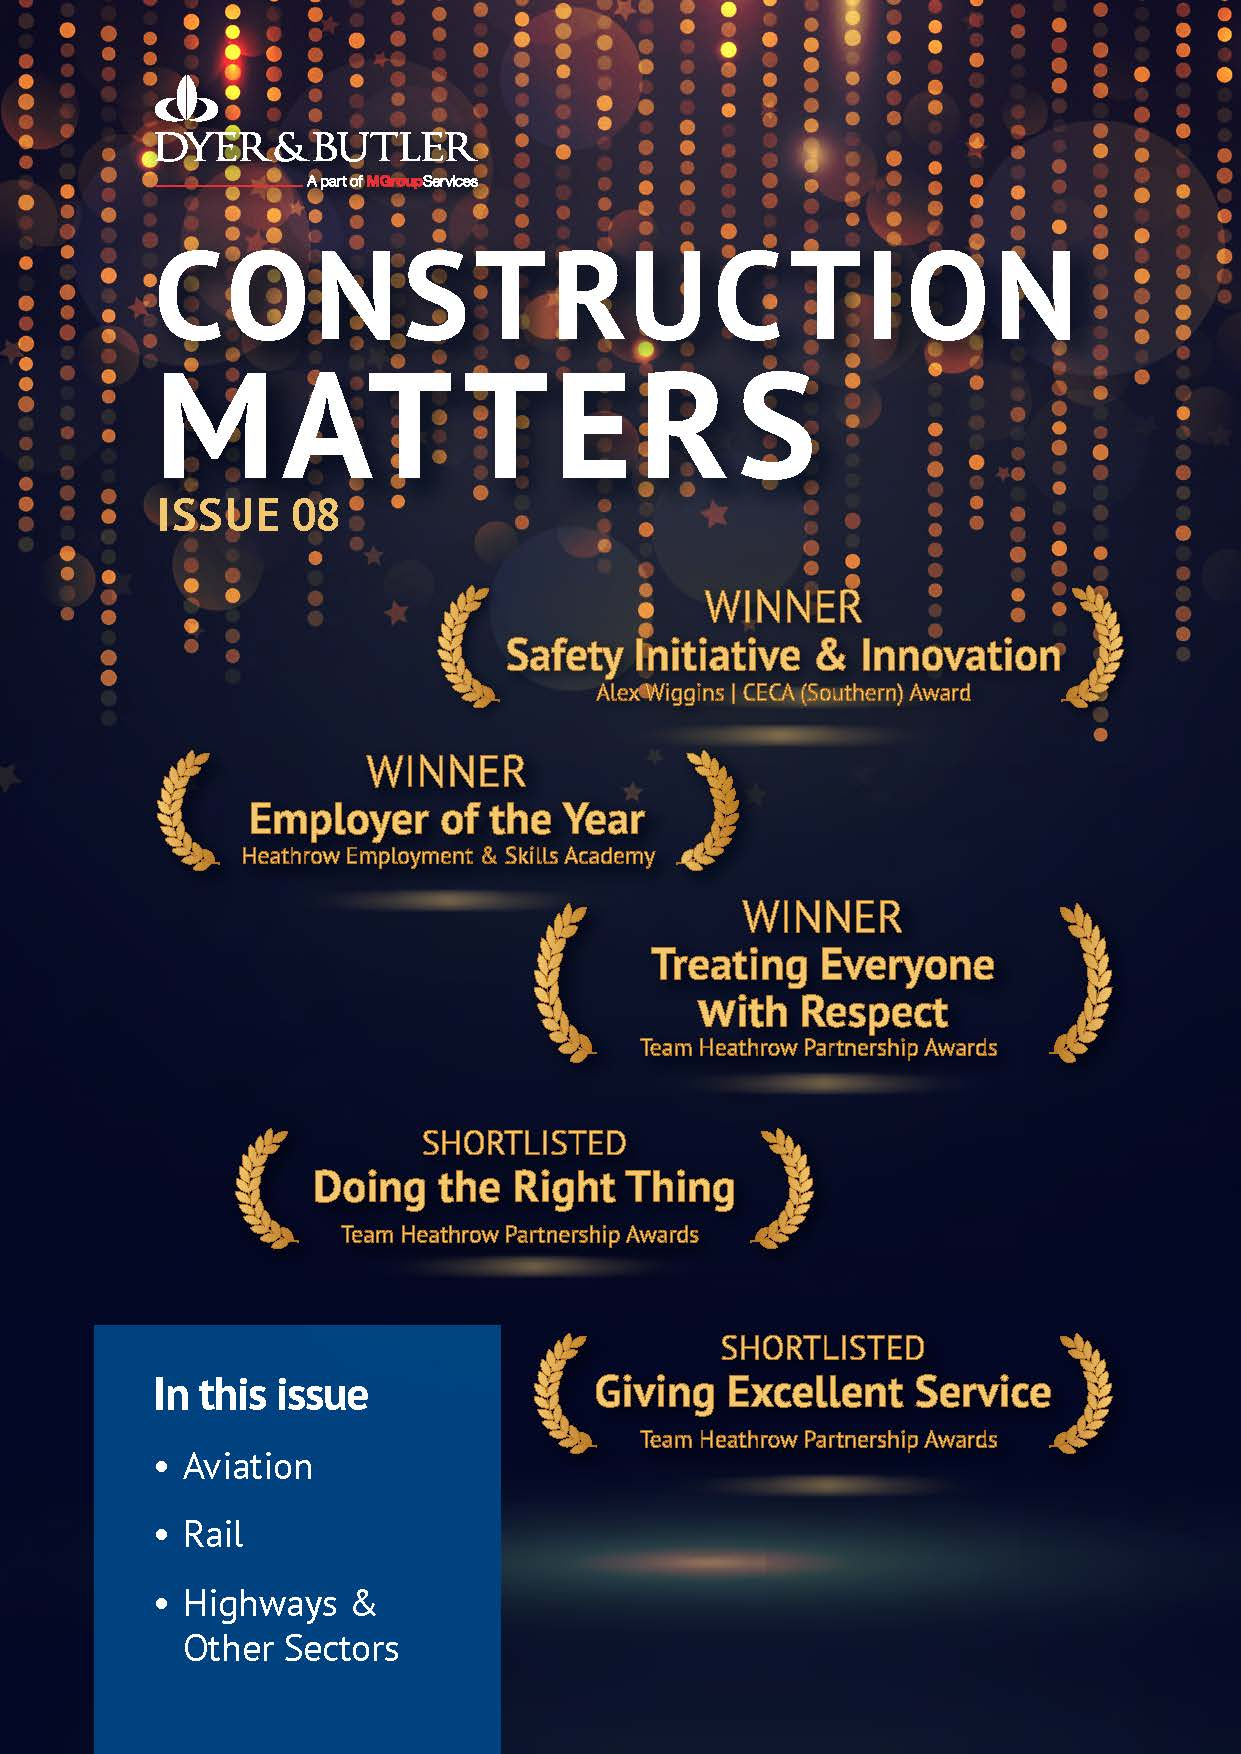 Construction Matters Issue 08